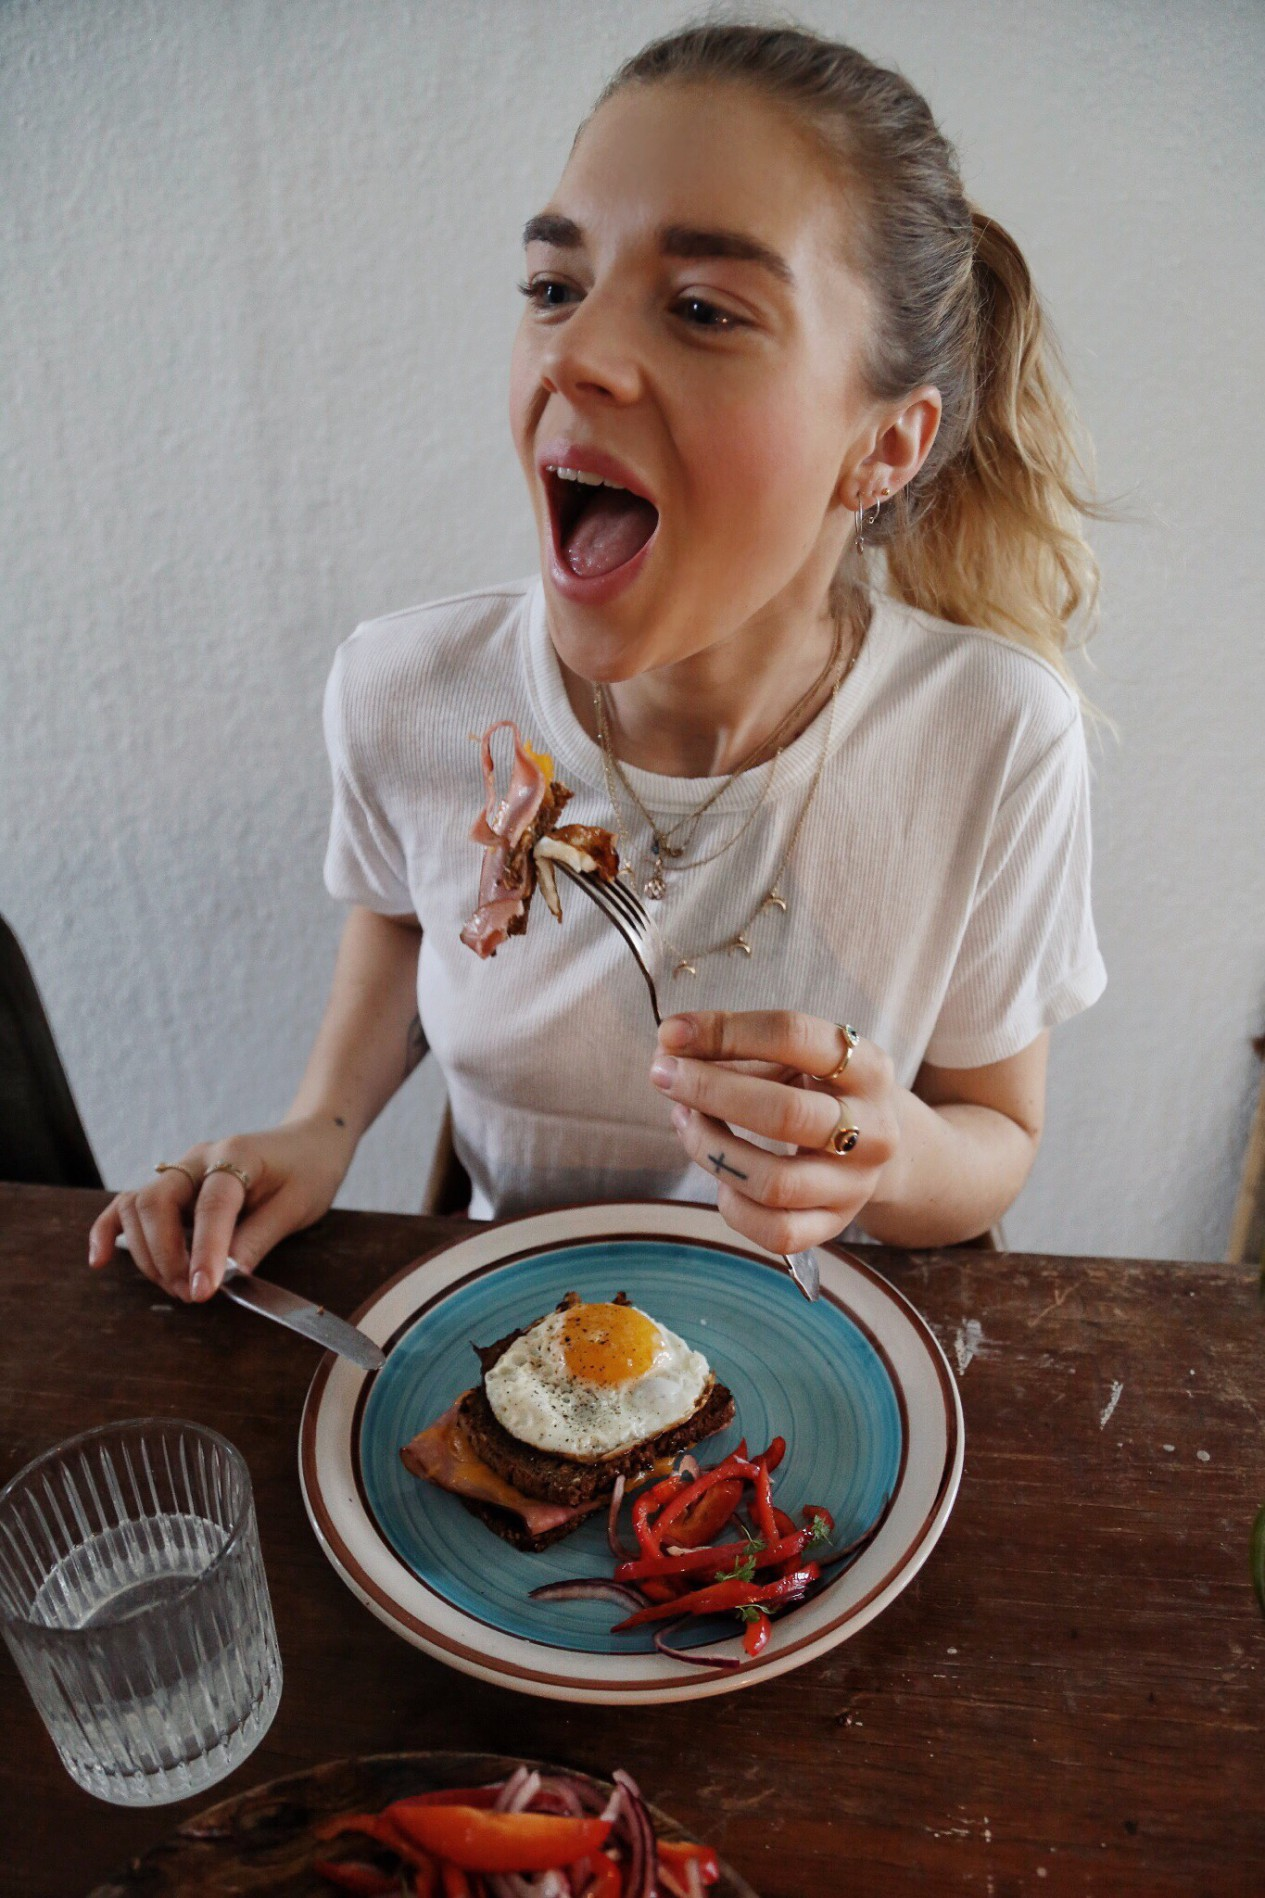 When he makes me breakfast – isabella thordsen